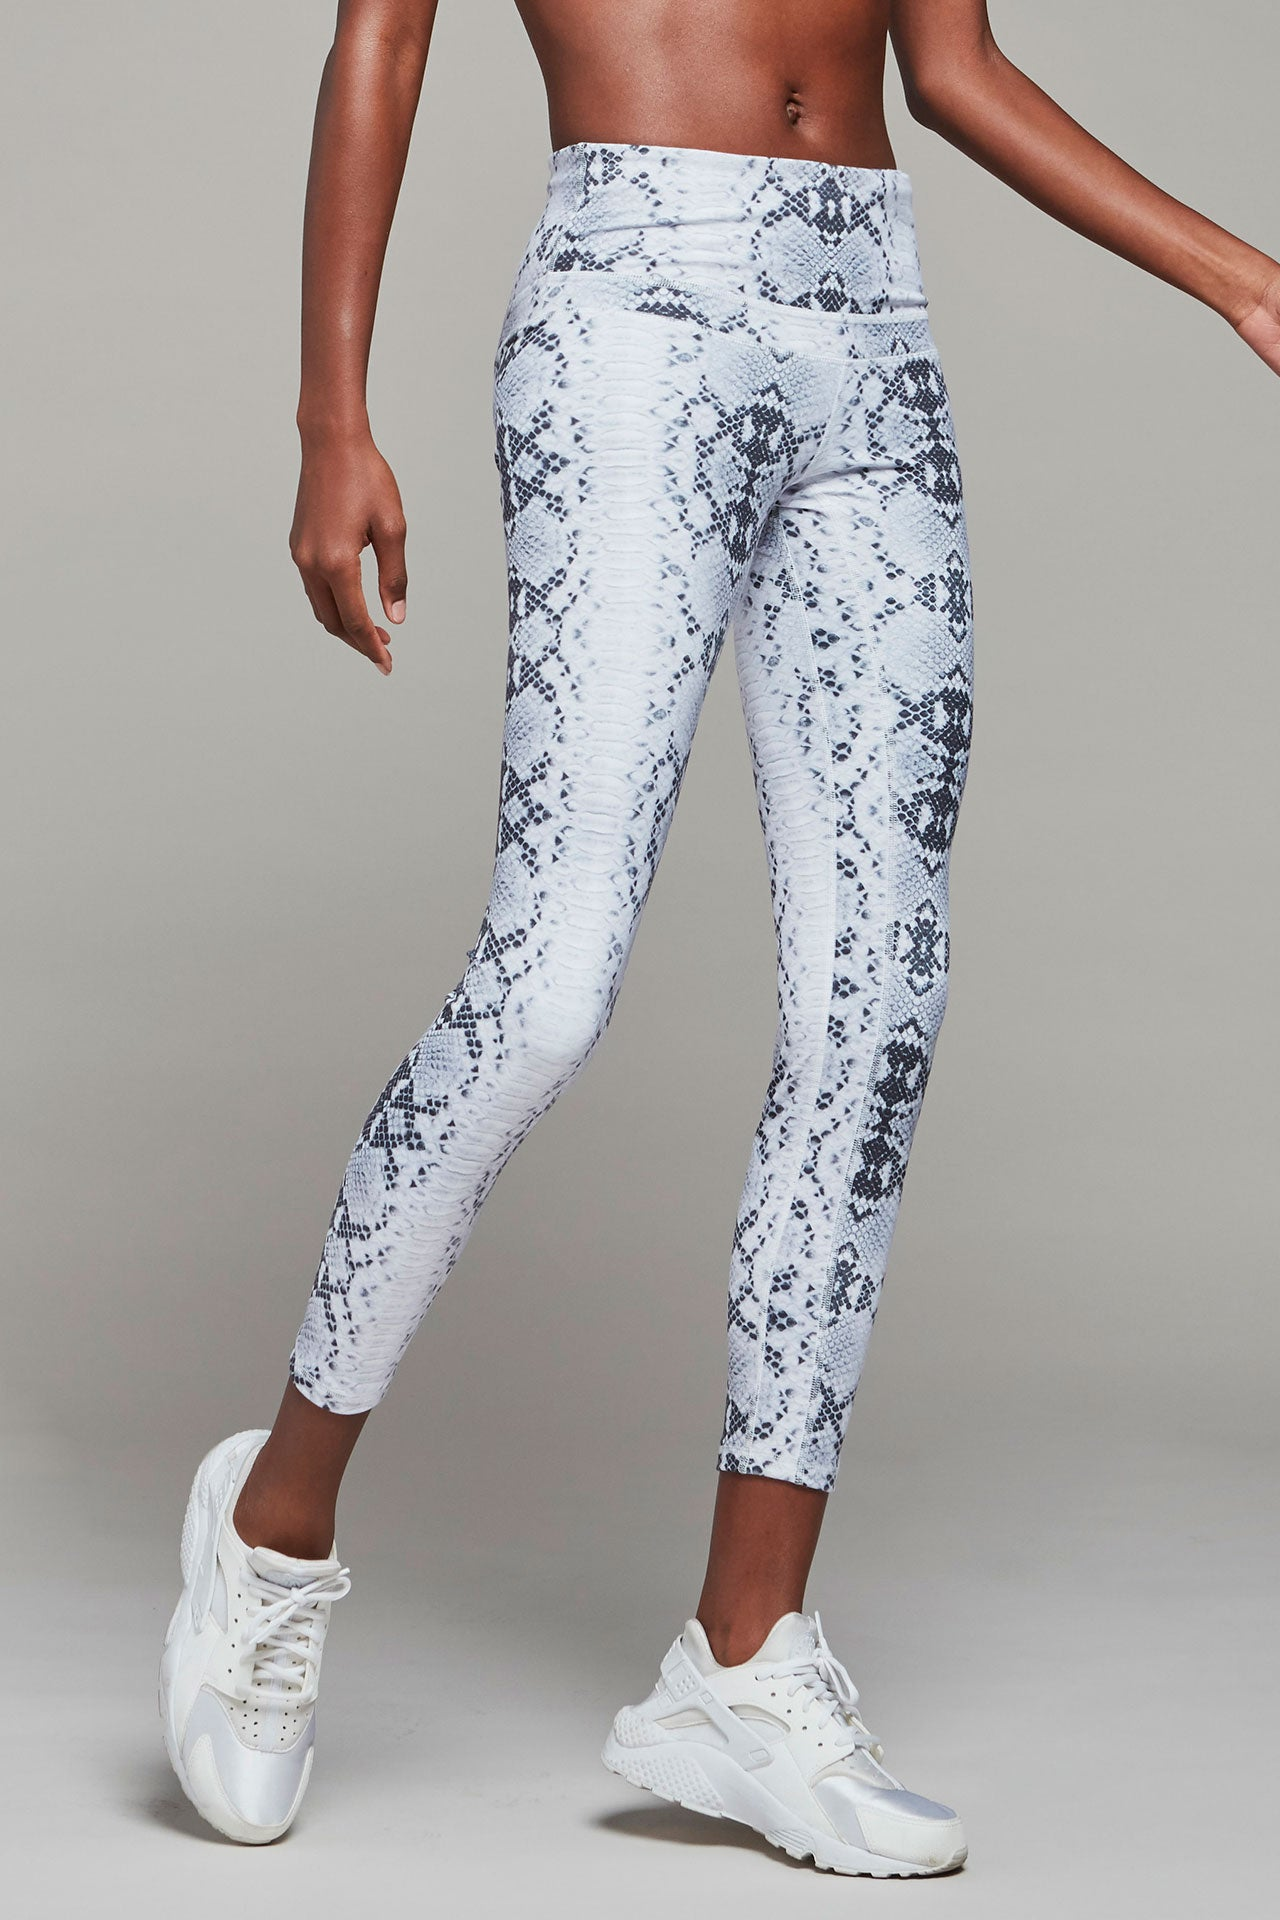 Biona Tight - Monochrome Snake